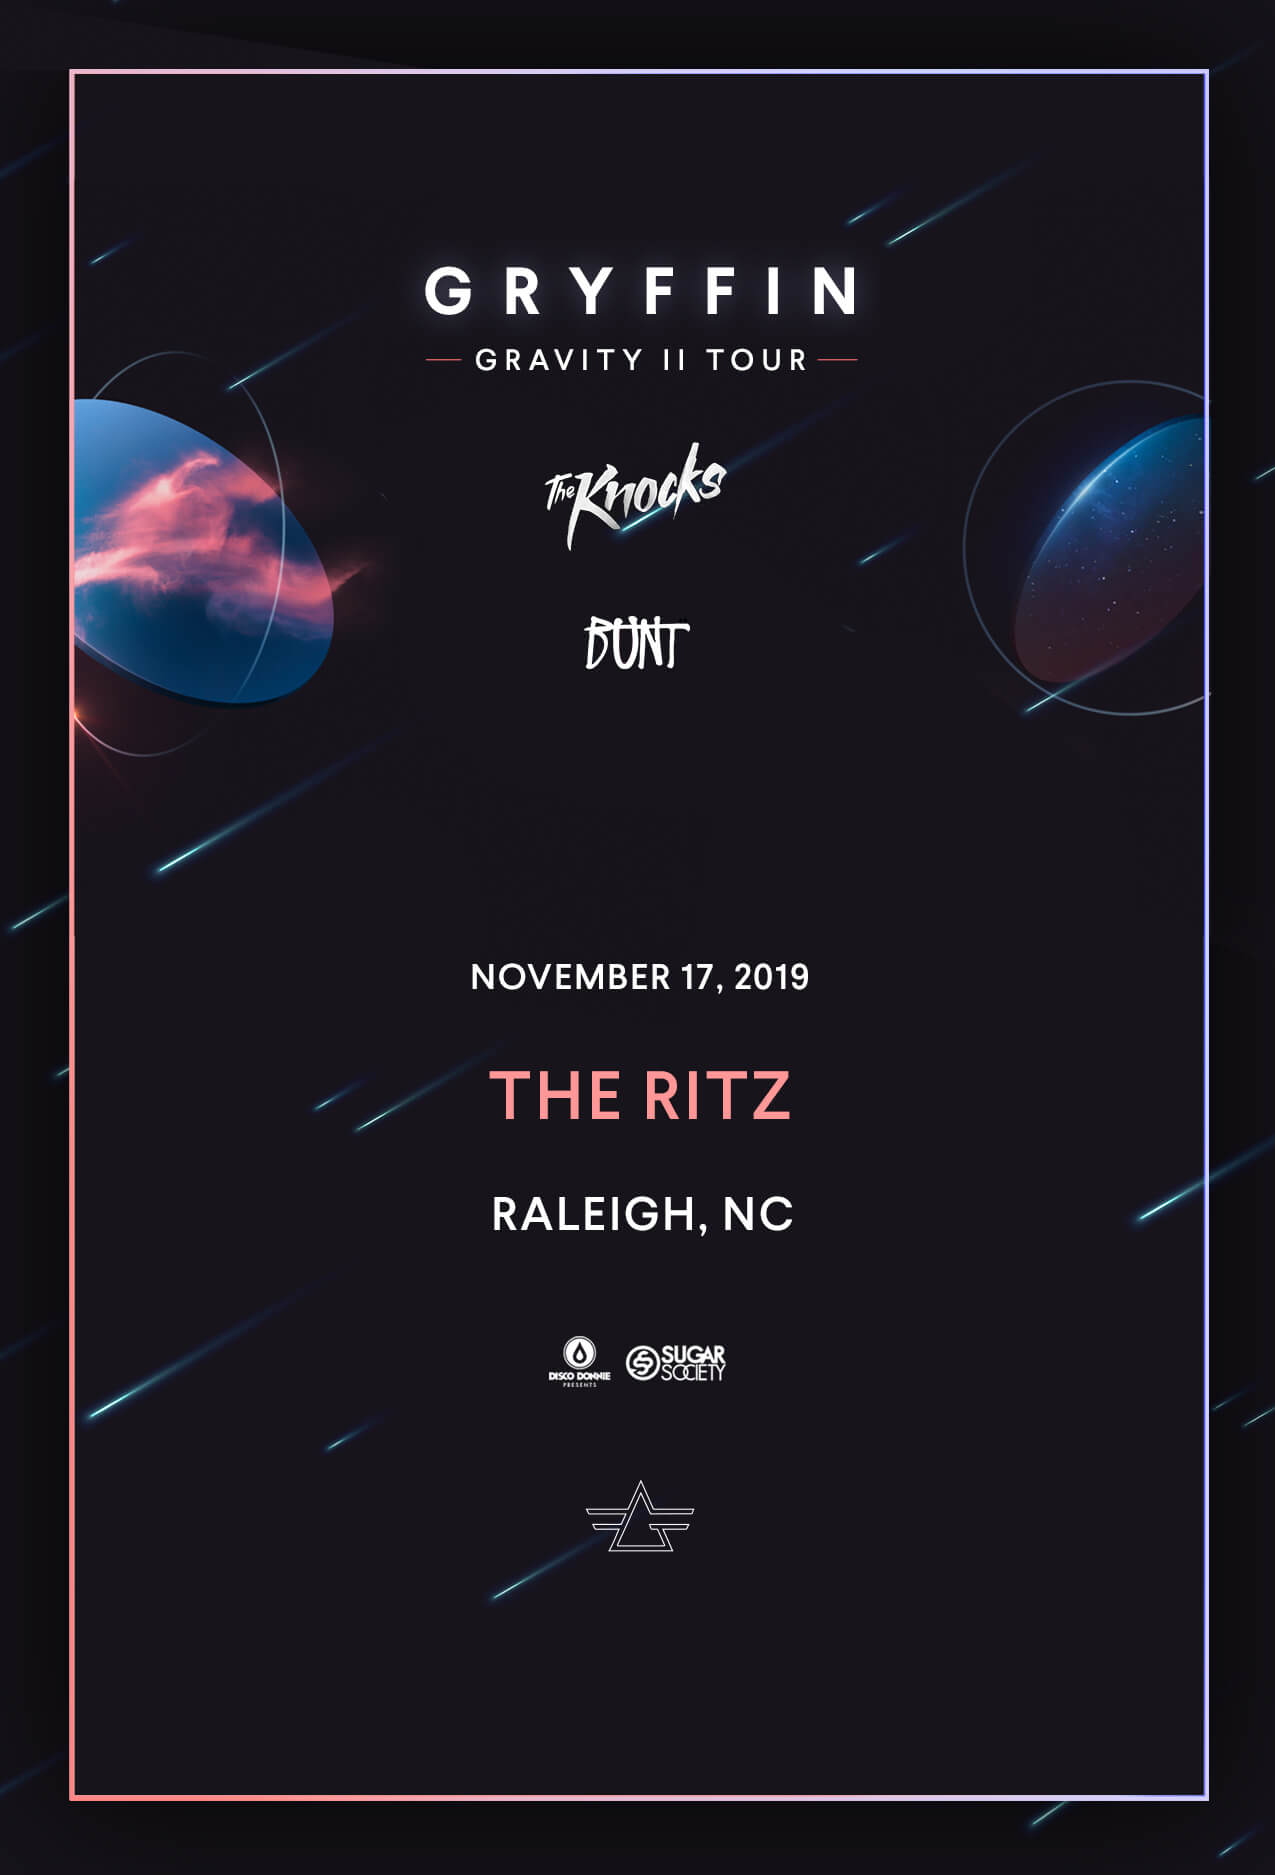 Gryffin, The Knocks, BUNT in Raleigh